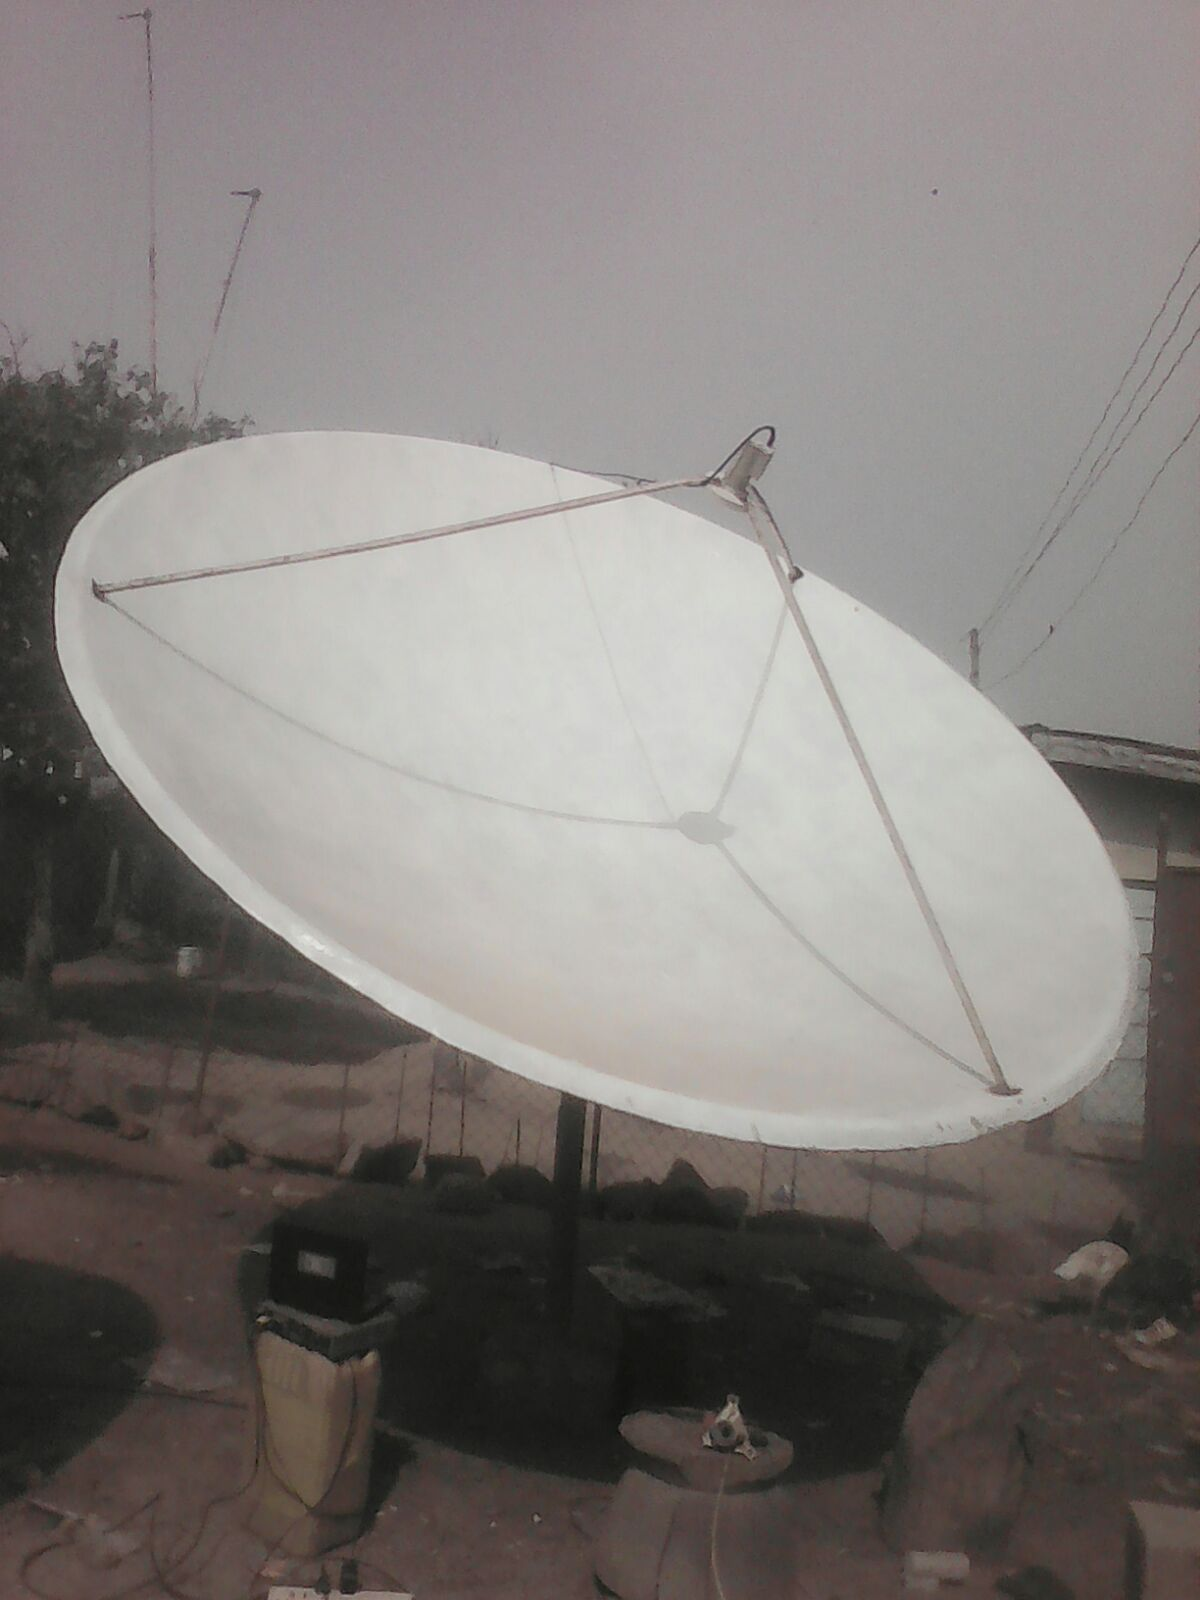 Free To Air Satellite Tv General Thread Technology Dstv Explora Lnb Connection With Smart 1136 Nigeria